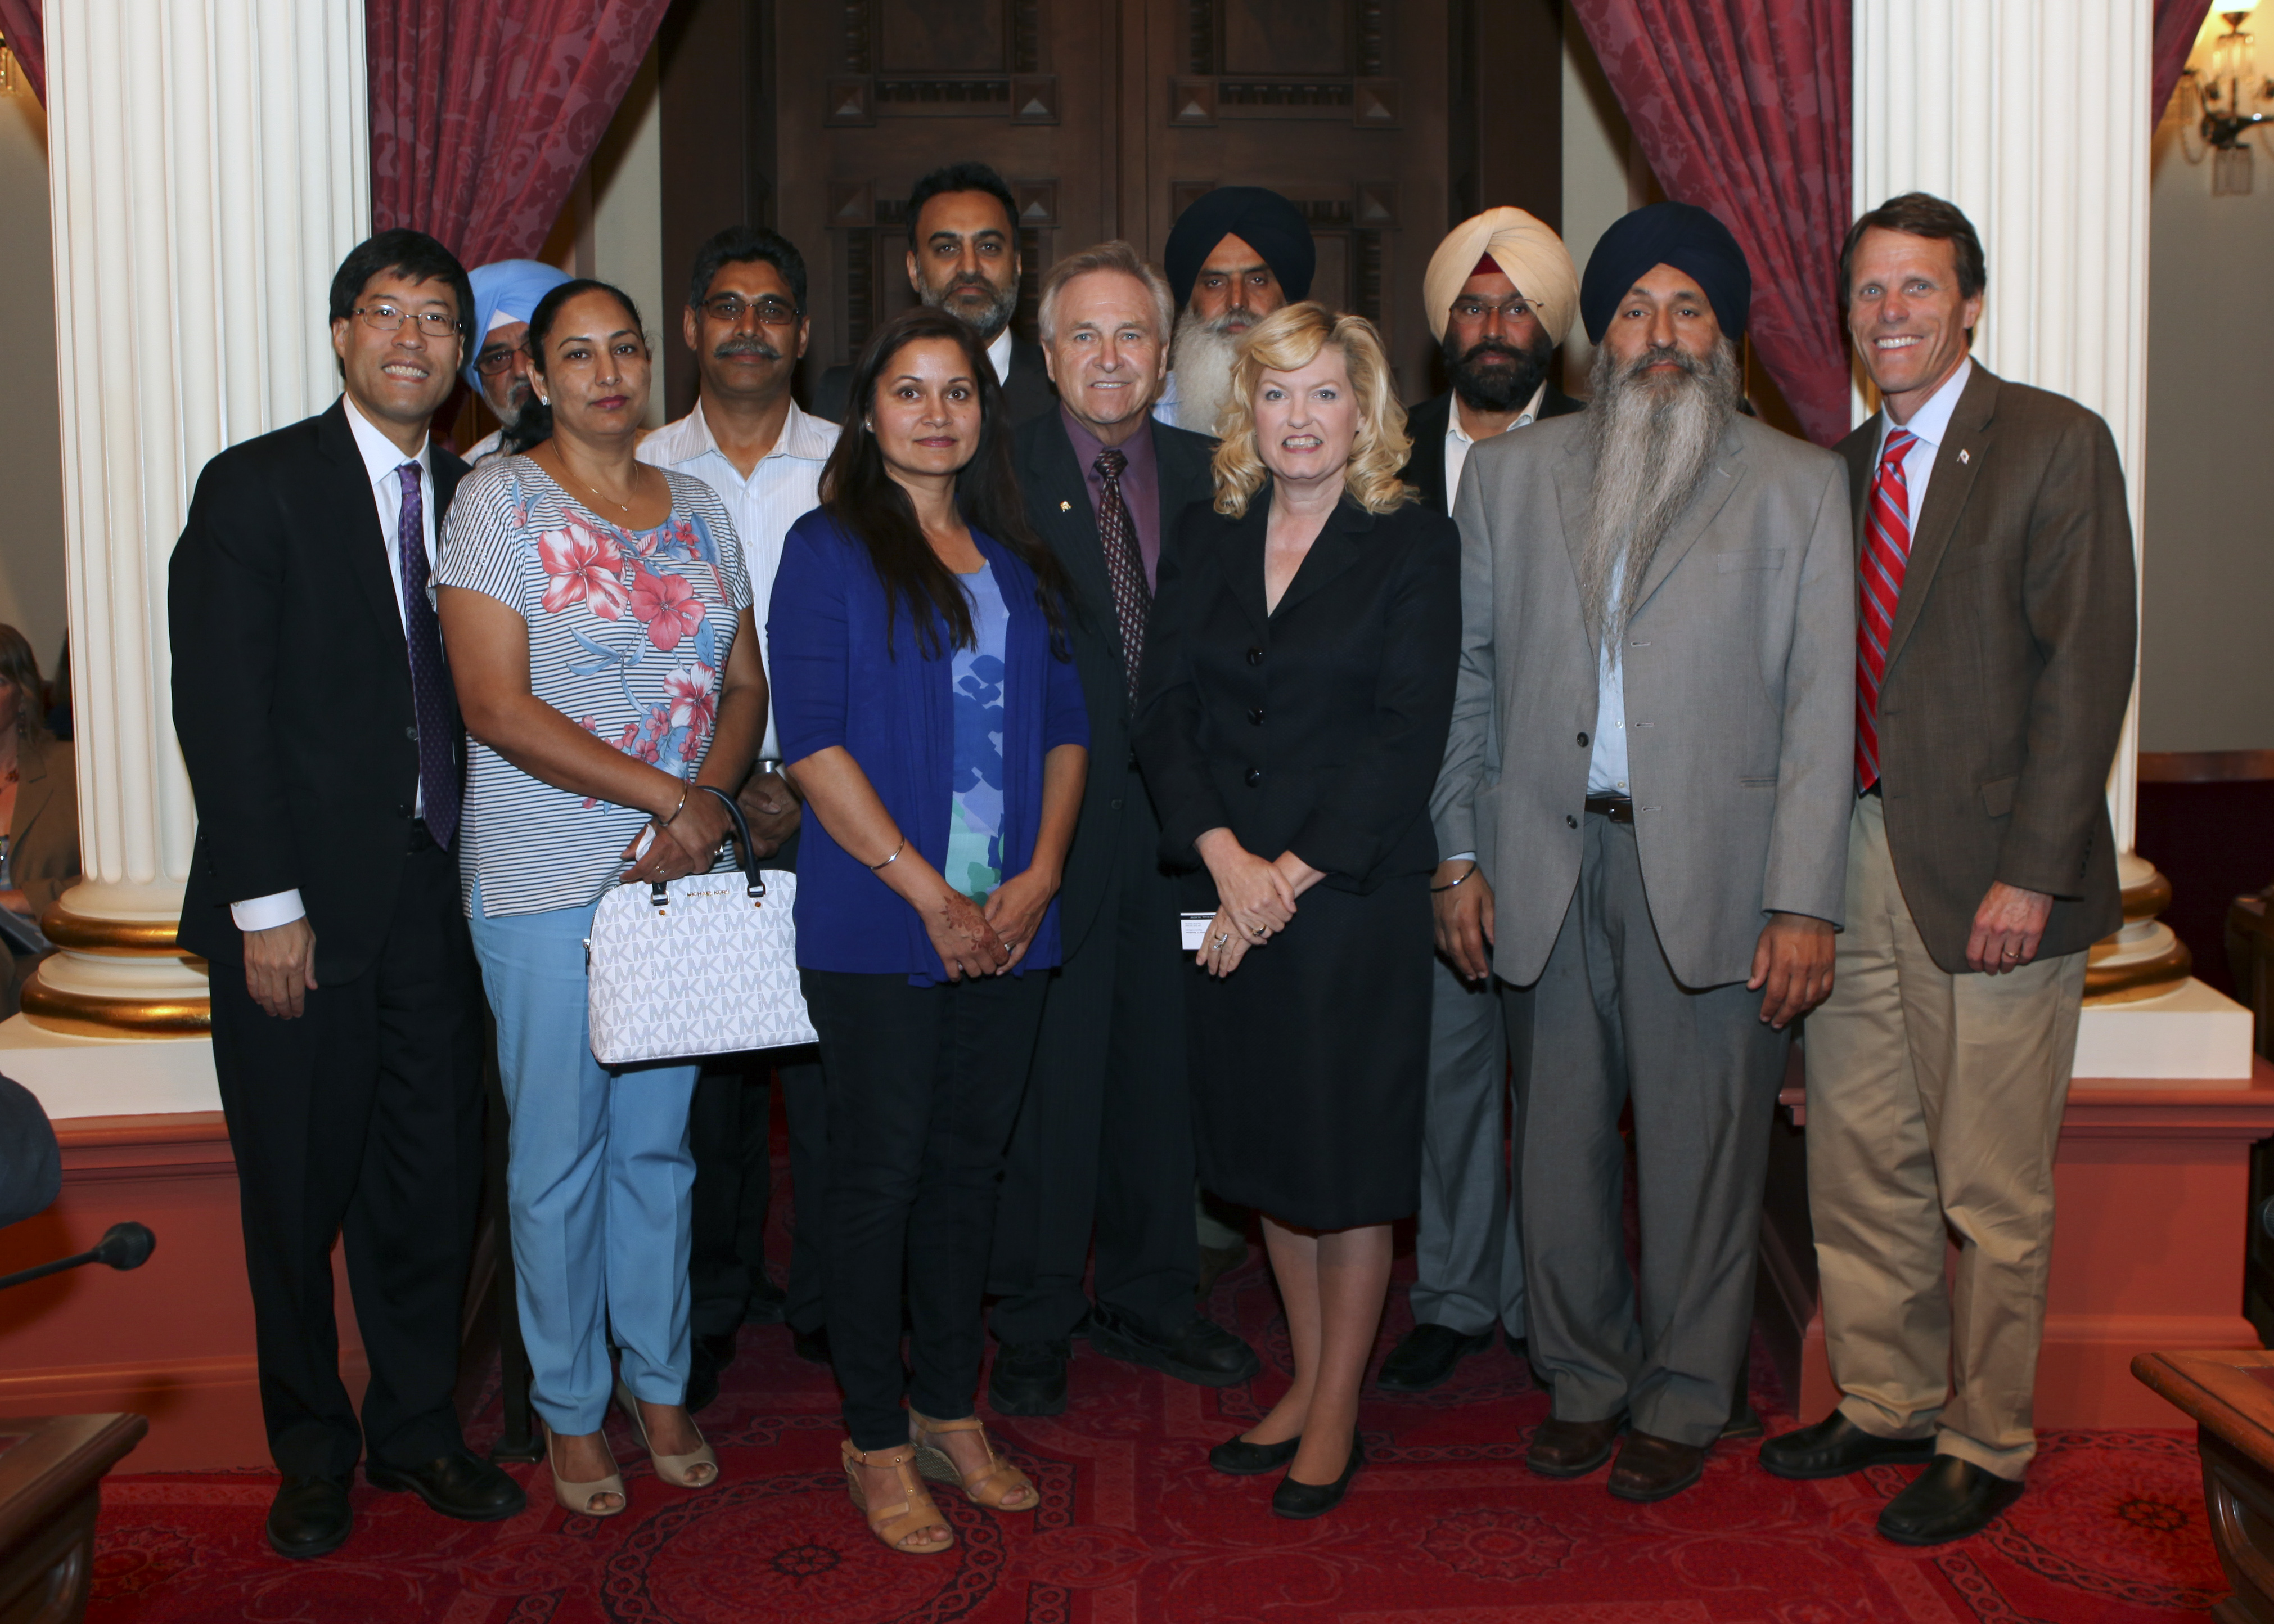 Sikh Community Representatives at California State Senate